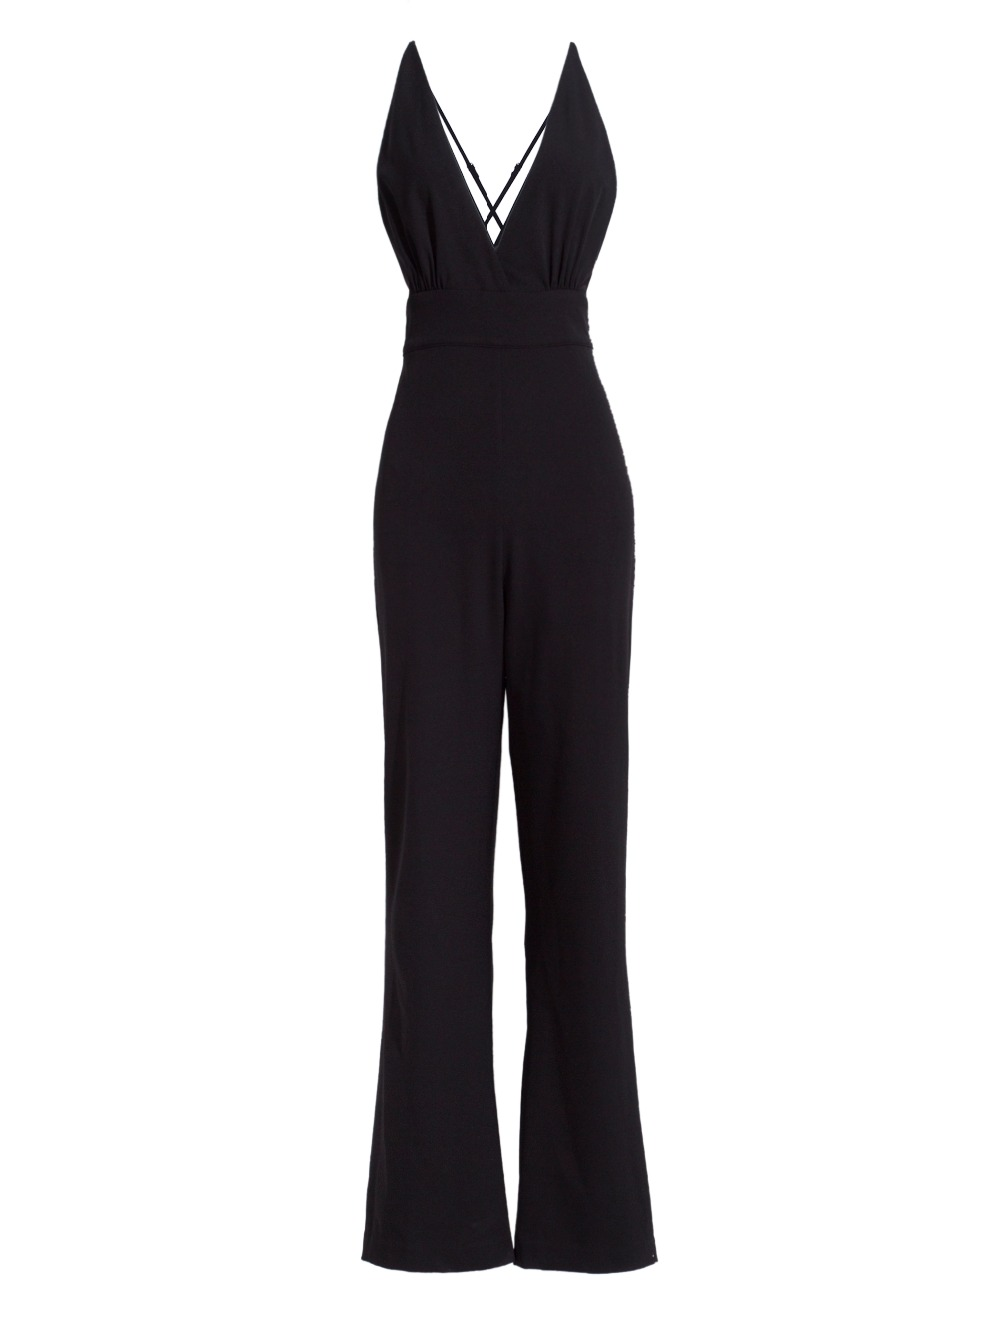 Modstreets 2017 Black Playsuits party Casual long Pants Jumpsuit Rompers Sexy Sleeveless V Neck Overalls Bodysuit Clearance